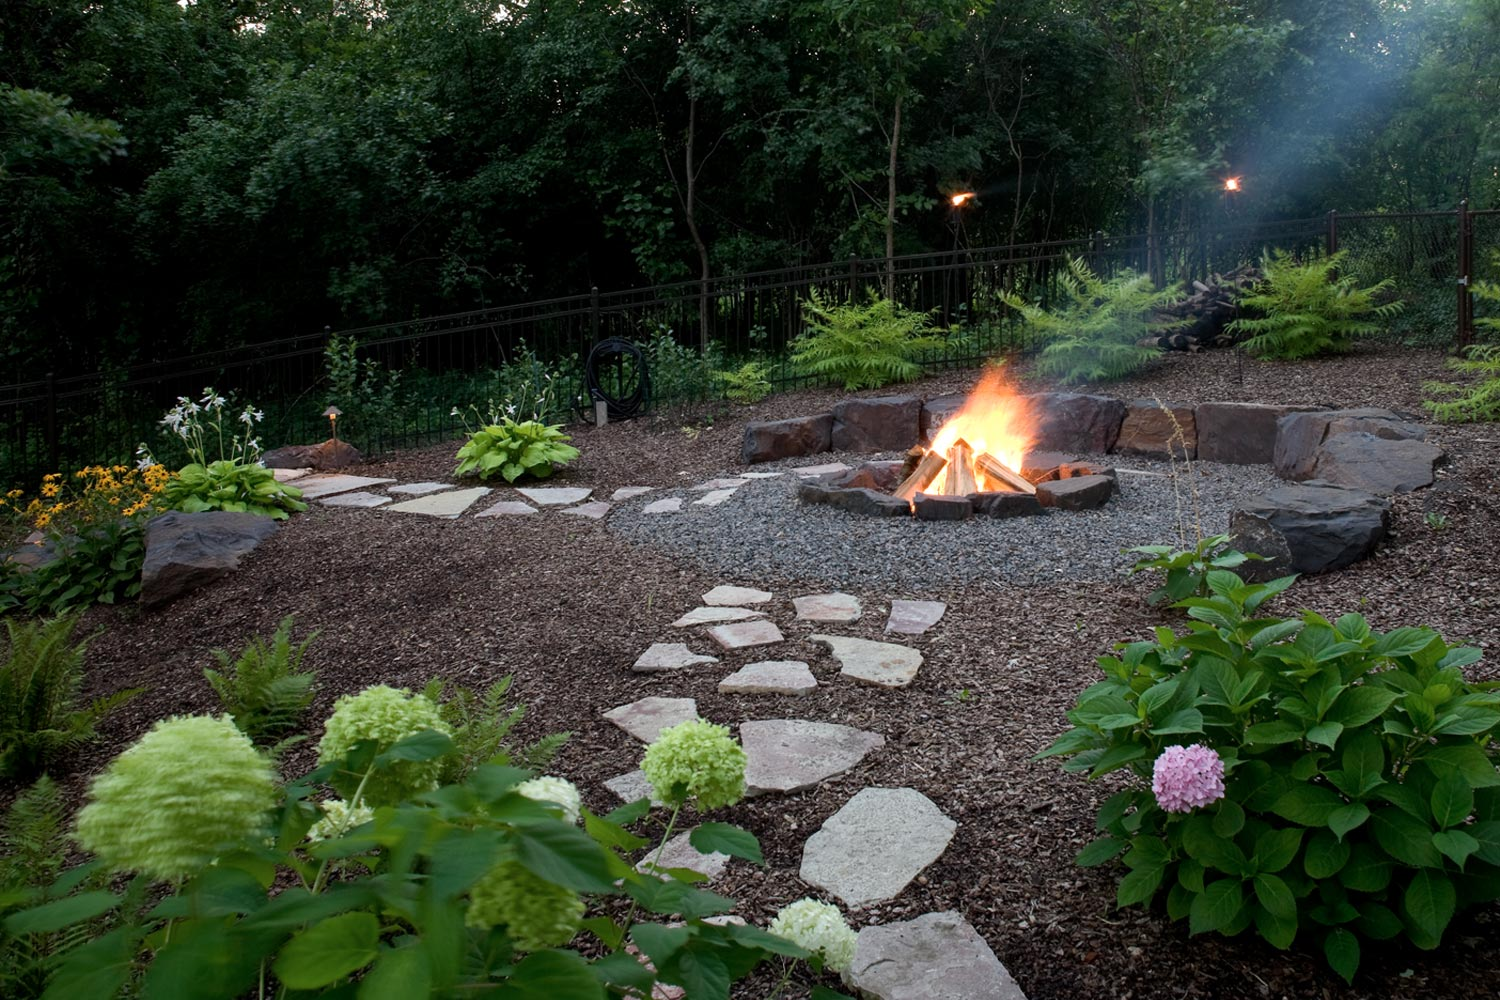 Flagstone paver walkways leading to an in-ground fire pit surrounded by crushed gravel.